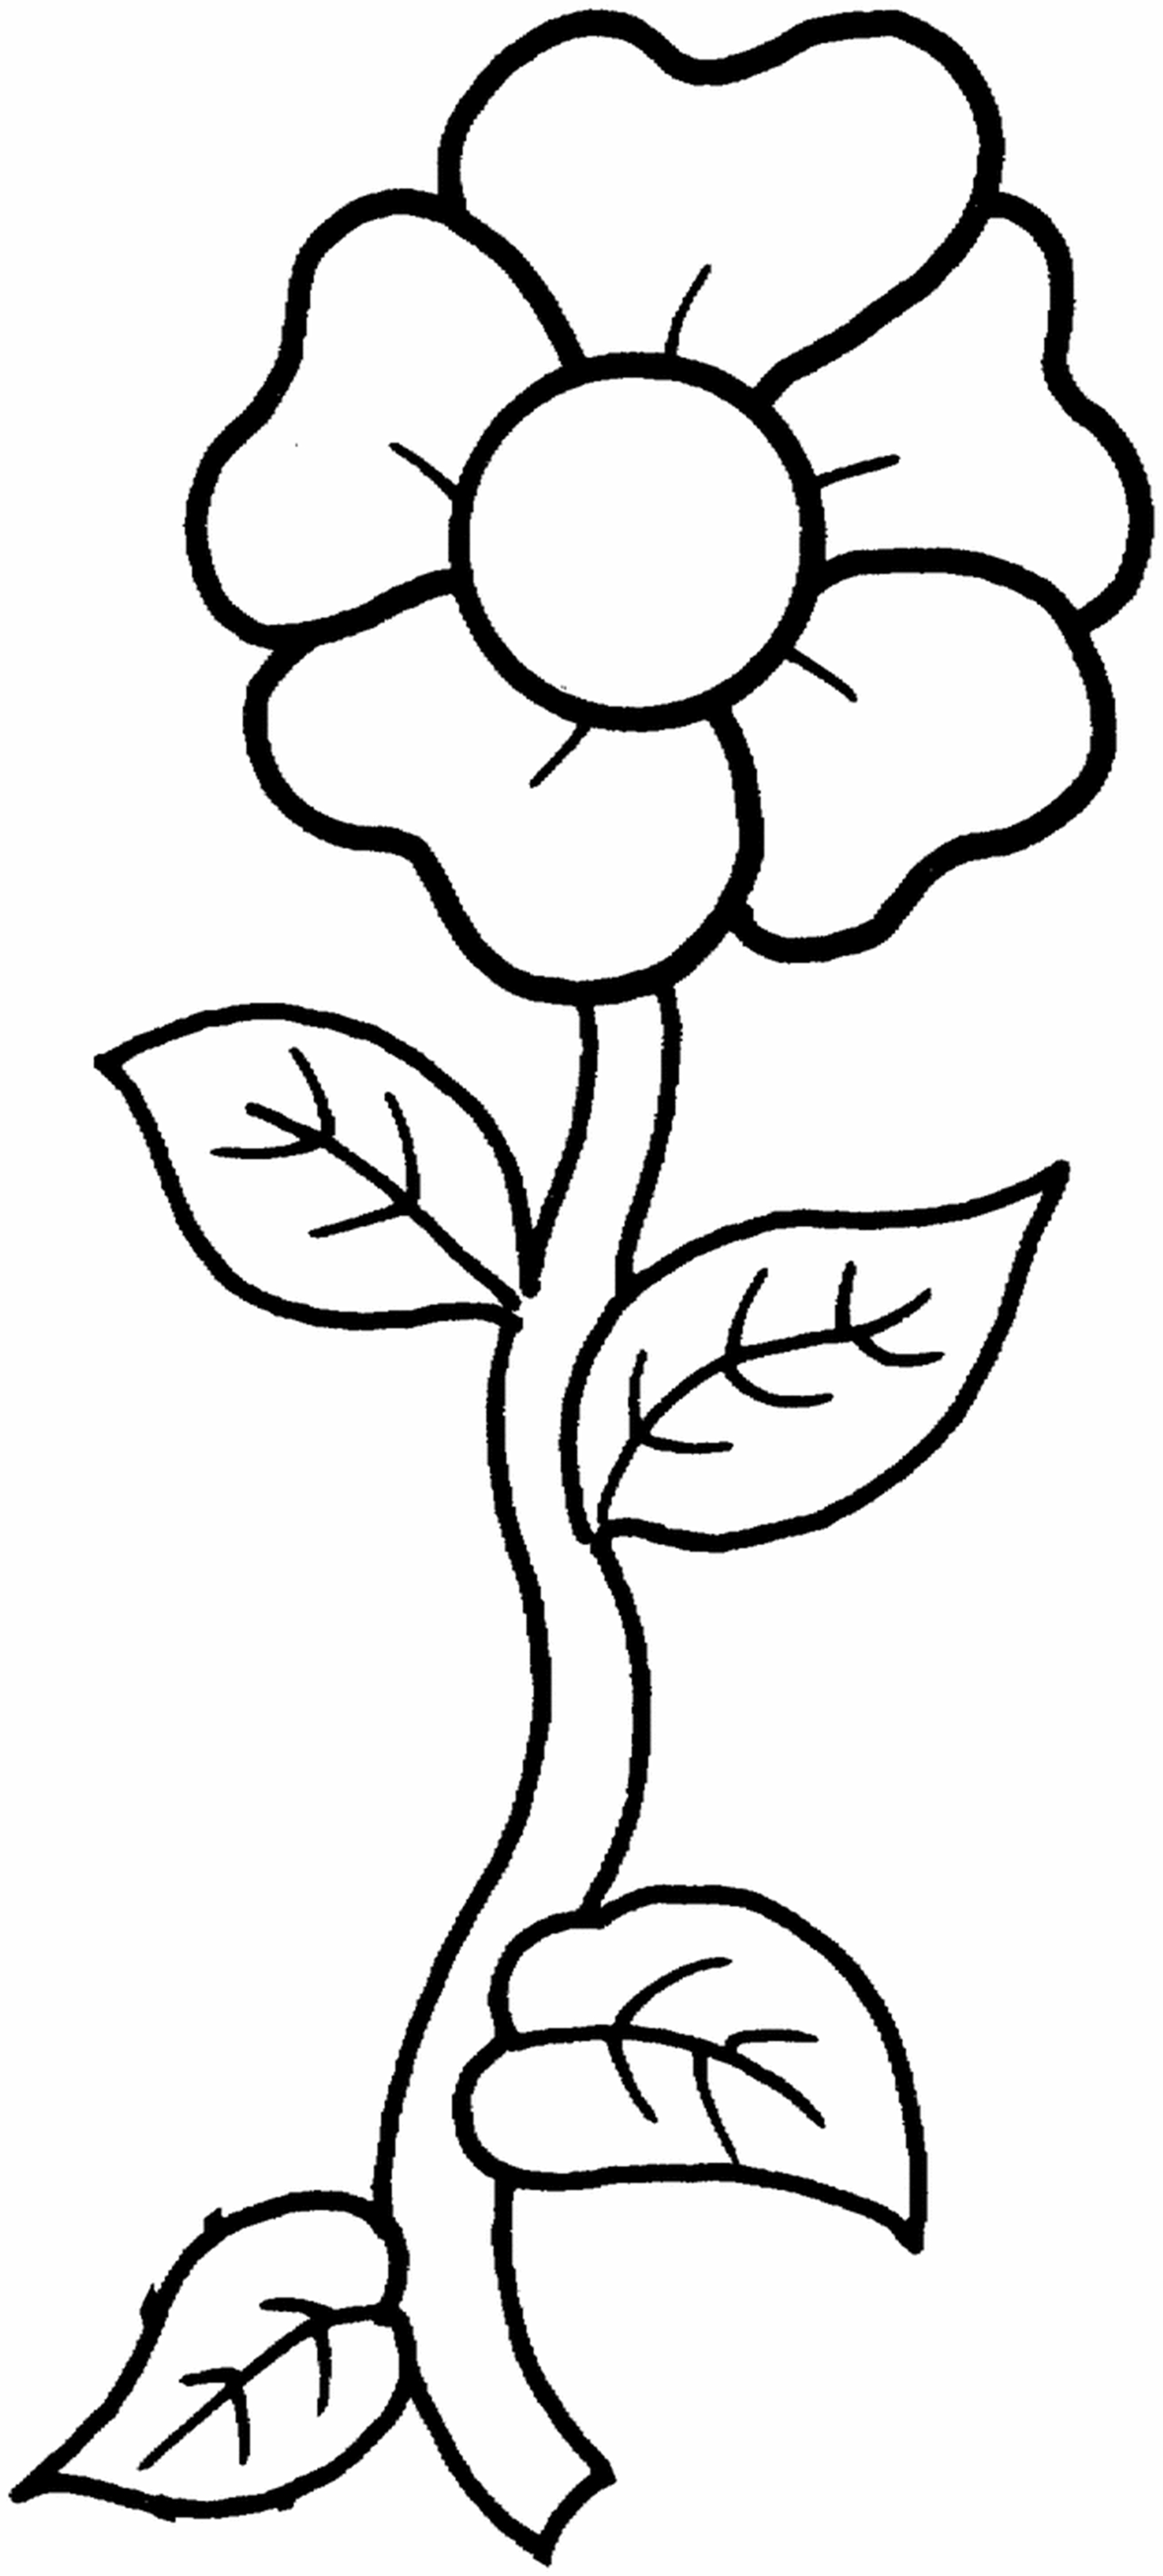 pictures of flowers to color free printables free printable flower coloring pages for kids best of free printables flowers to color pictures